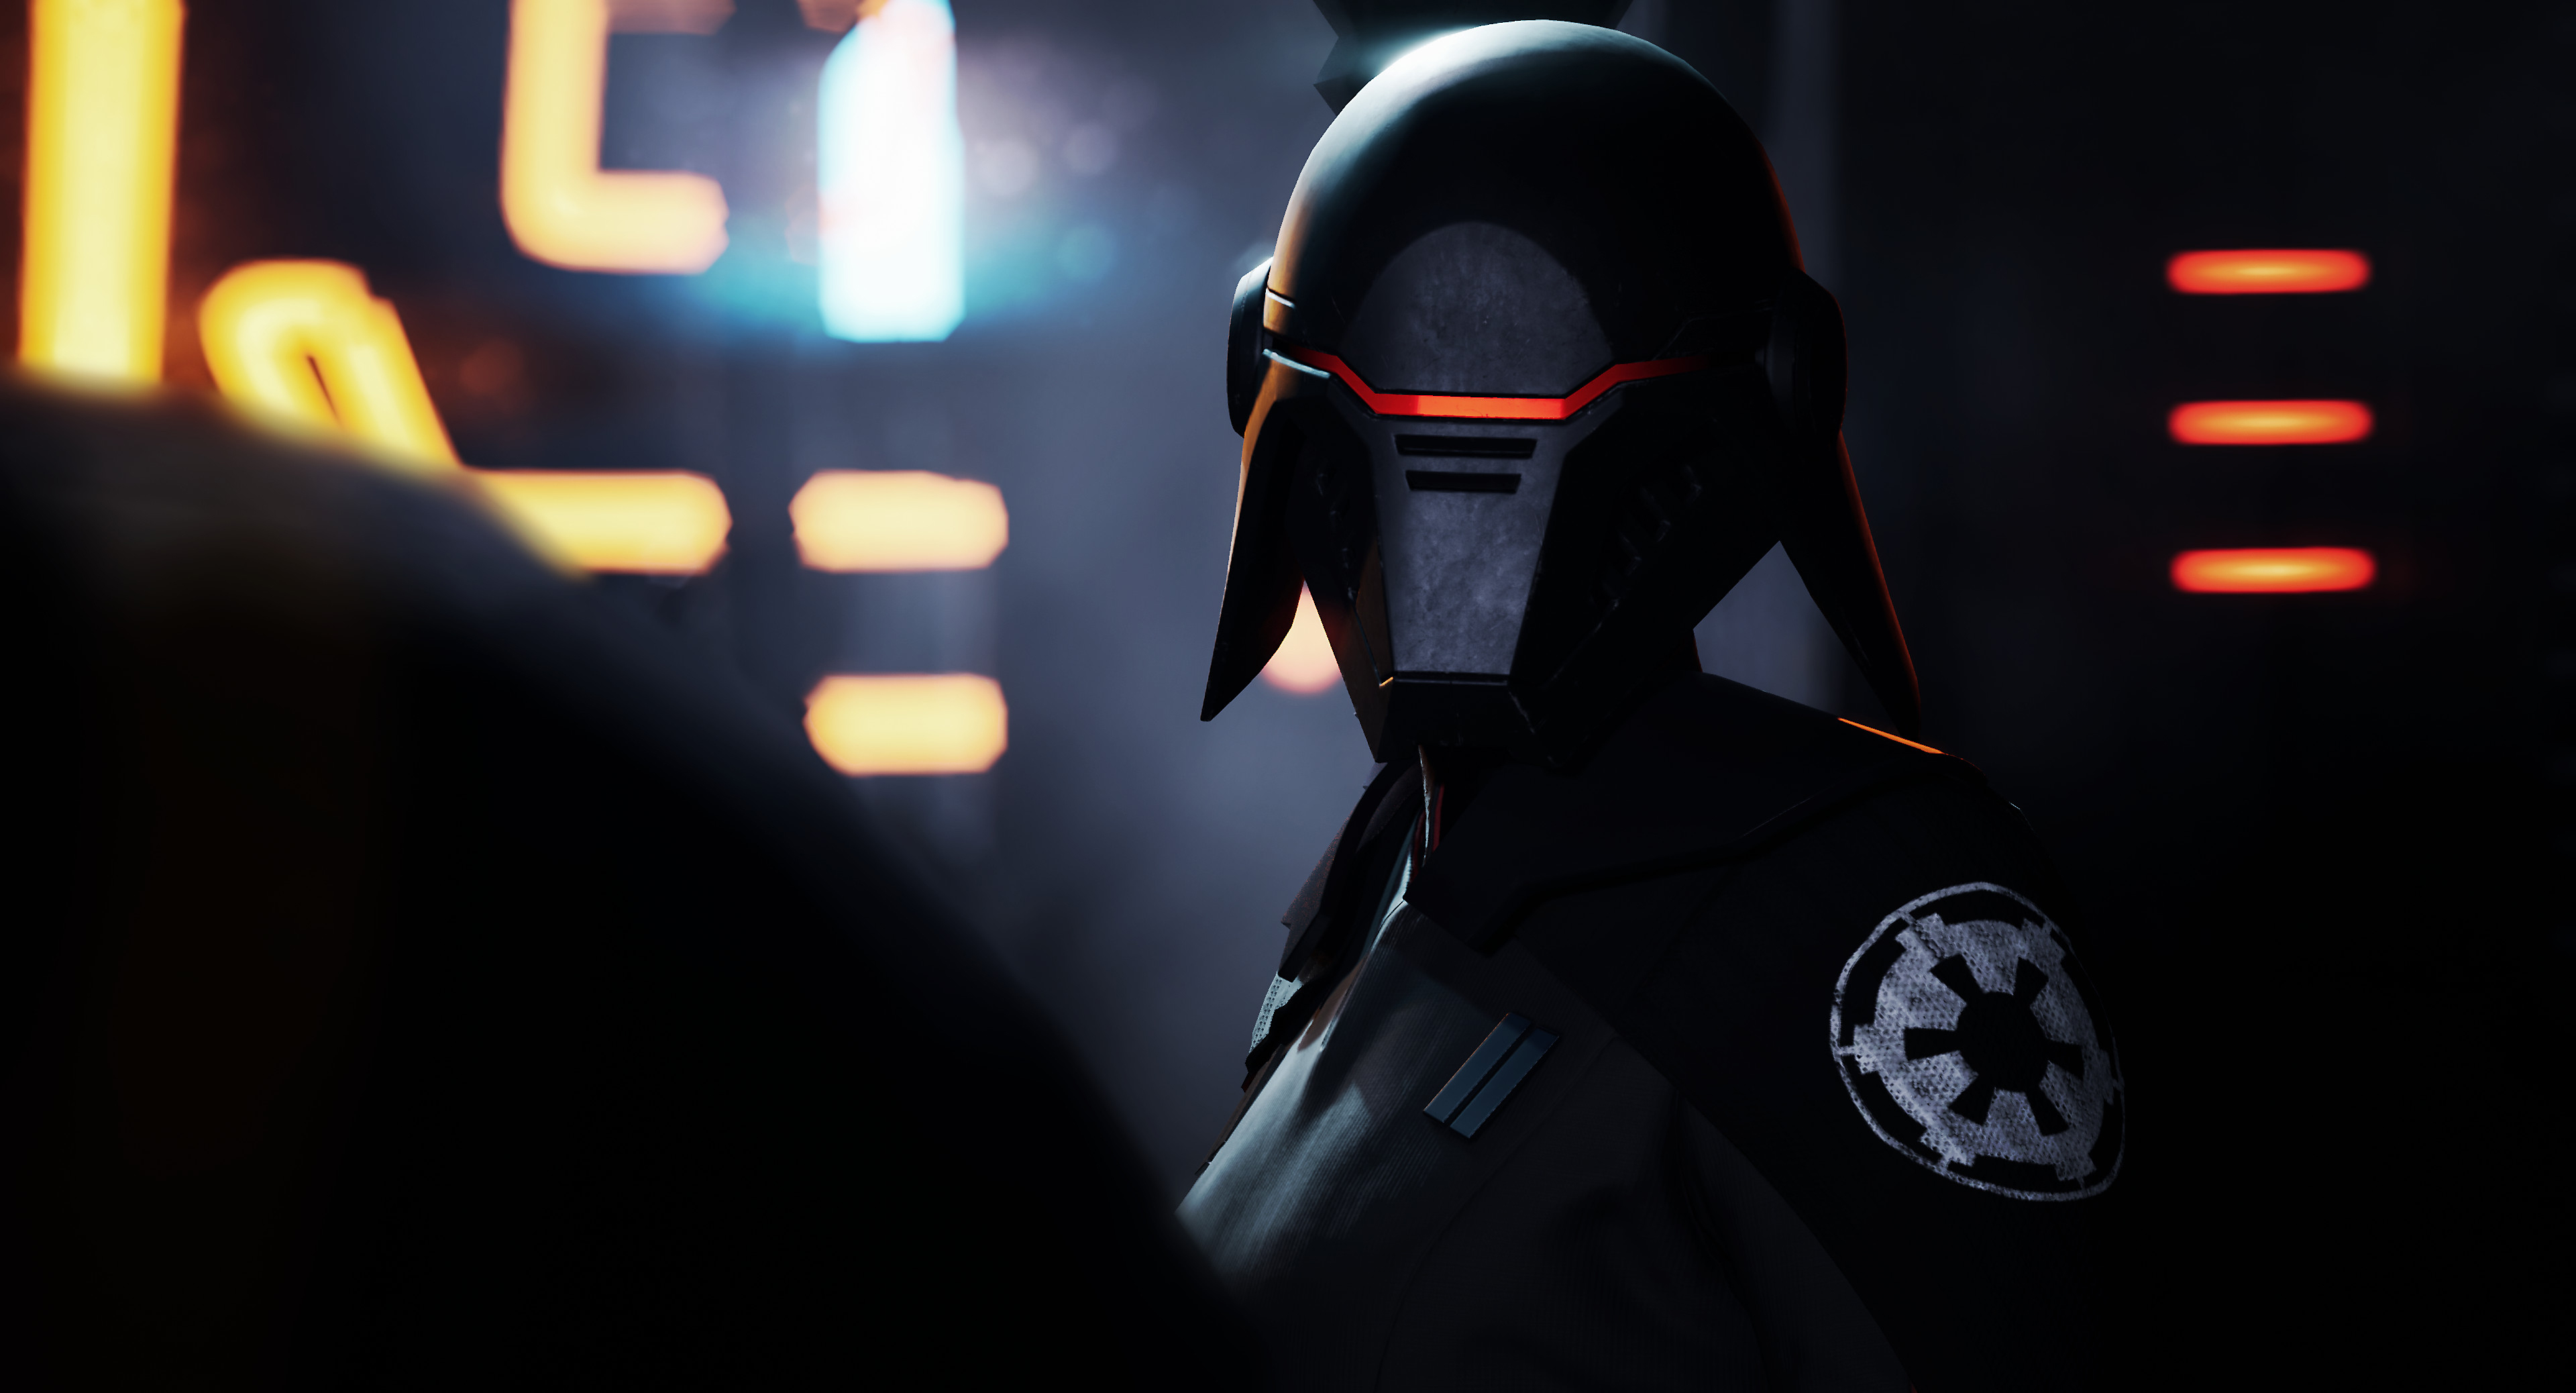 Star Wars Jedi Fallen Order 4K Wallpaper 1